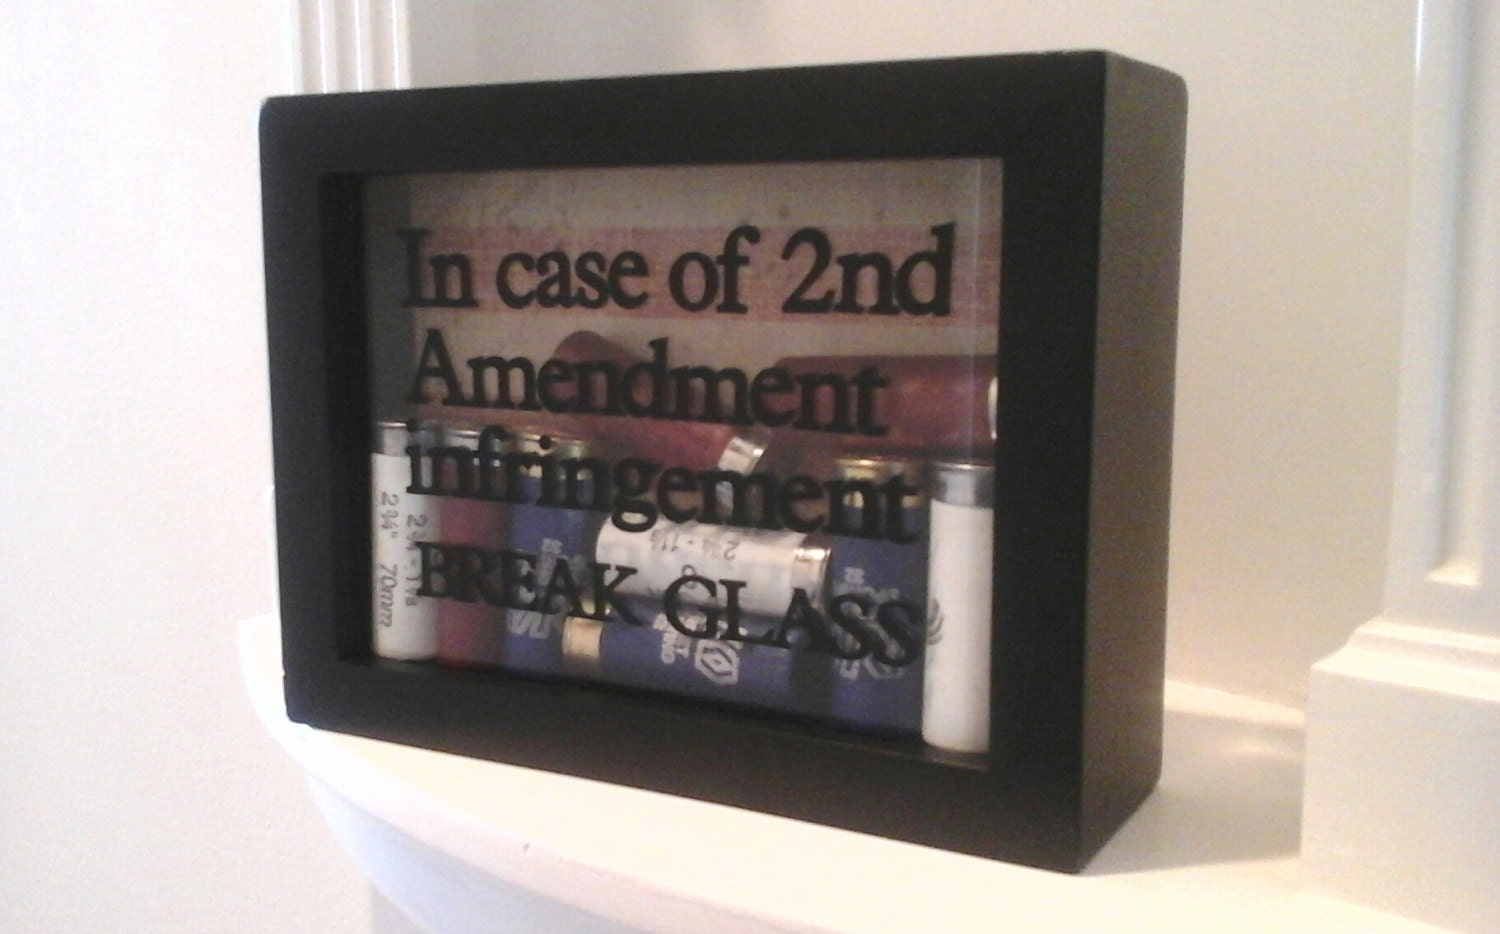 Man Cave Father S Day Gifts : Bullet frame shadow box free shipping nd amendment gun